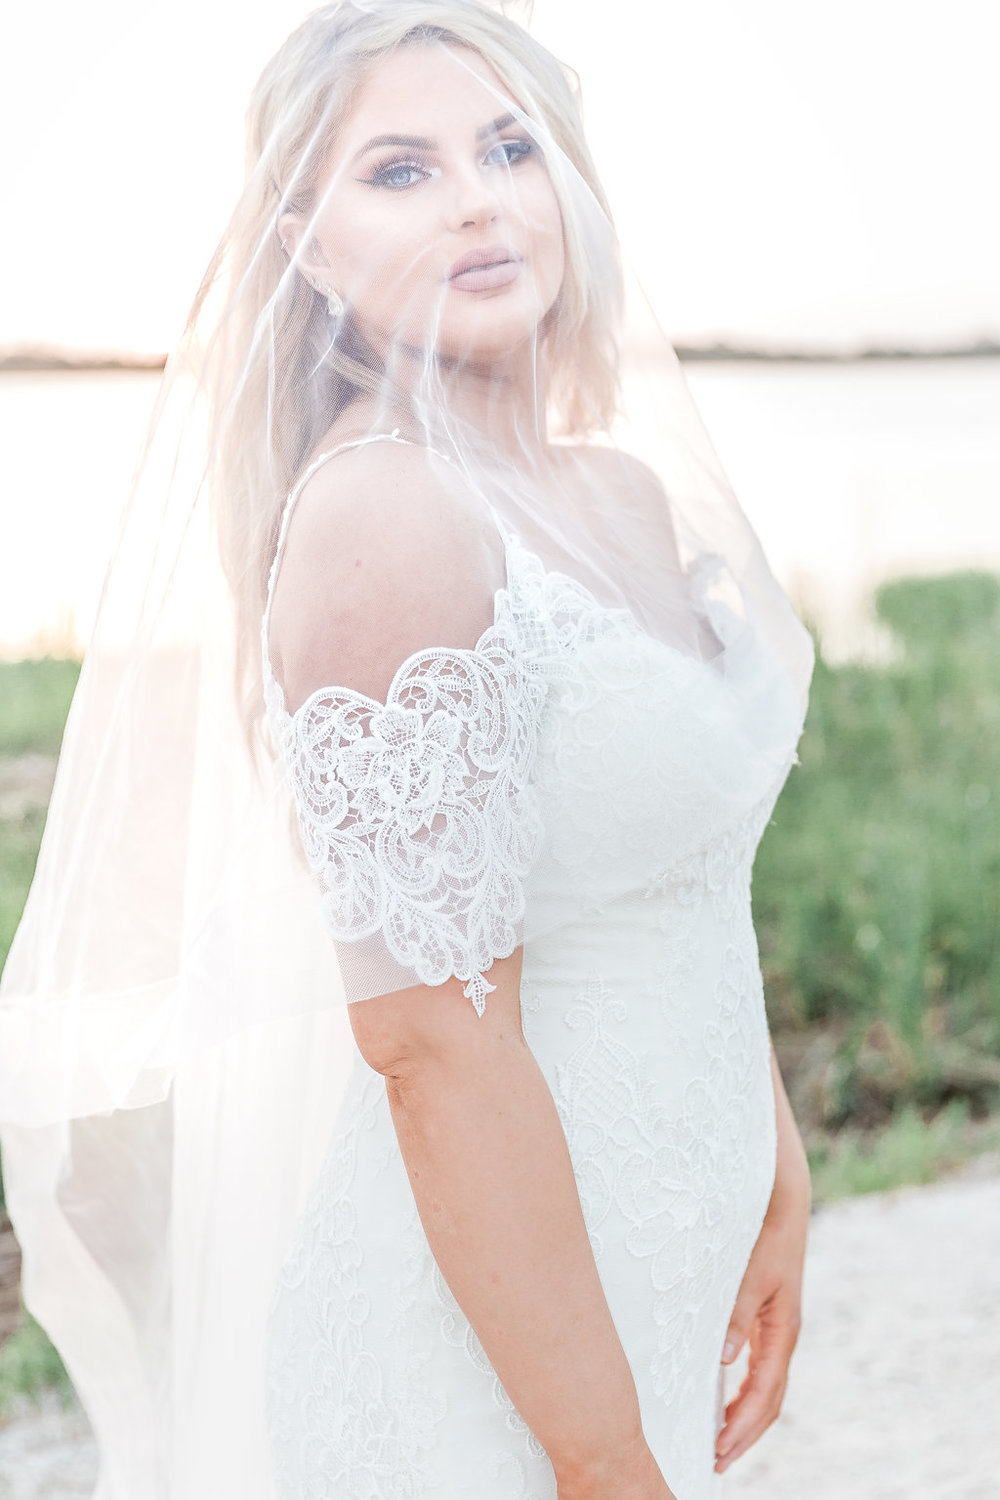 savannah-bridal-shop-beachy-bridal-glam-beach-wedding-looks-and-inspiration-southern-lens-photography-maggie-sottero-10.jpg